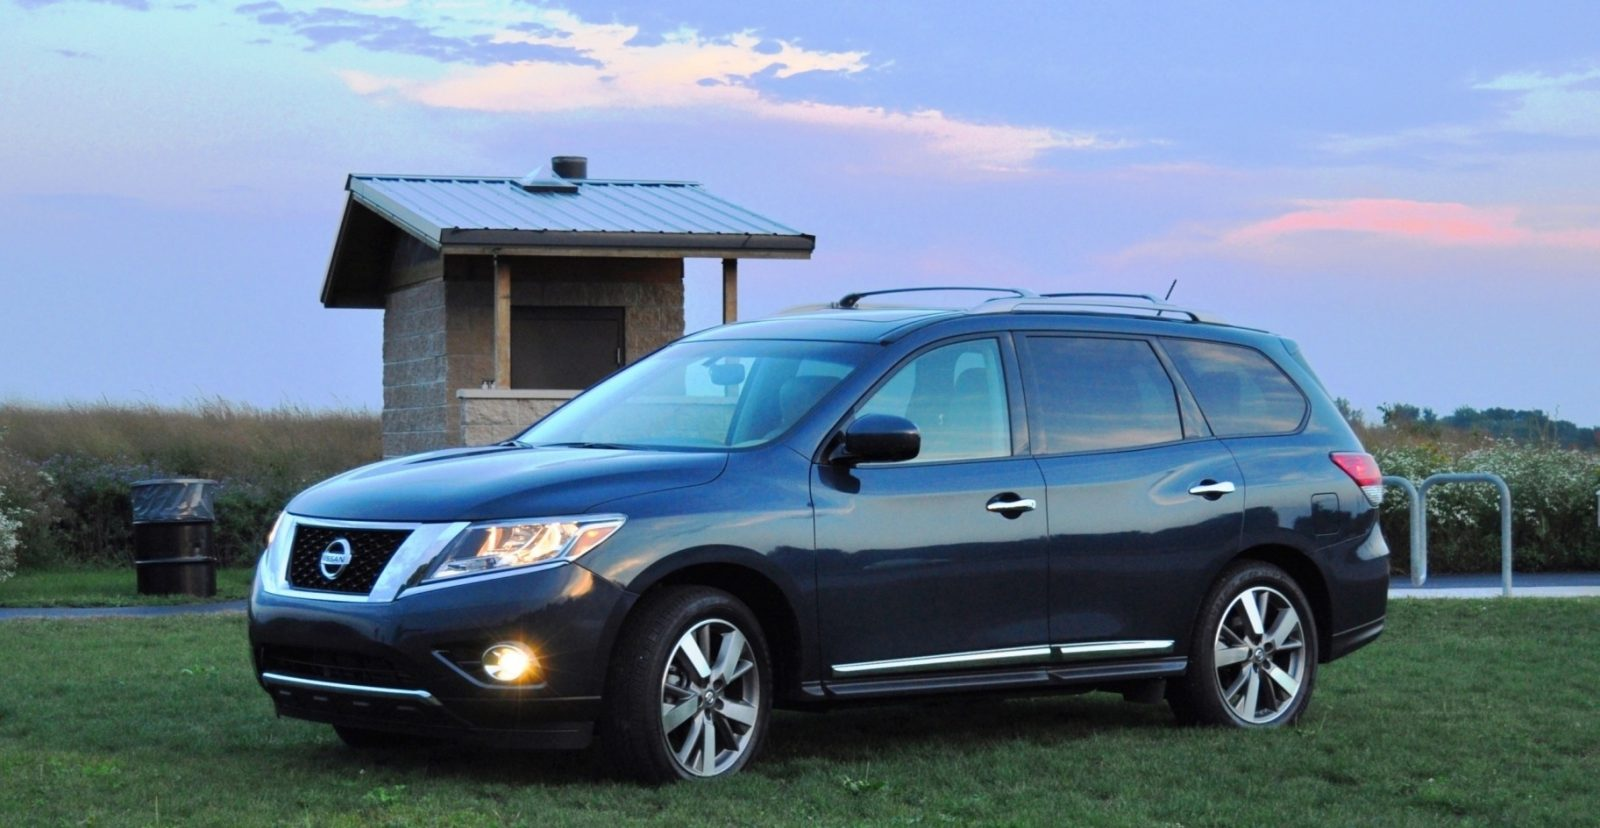 2014 Nissan Pathfinder Platinum Inside and Out32